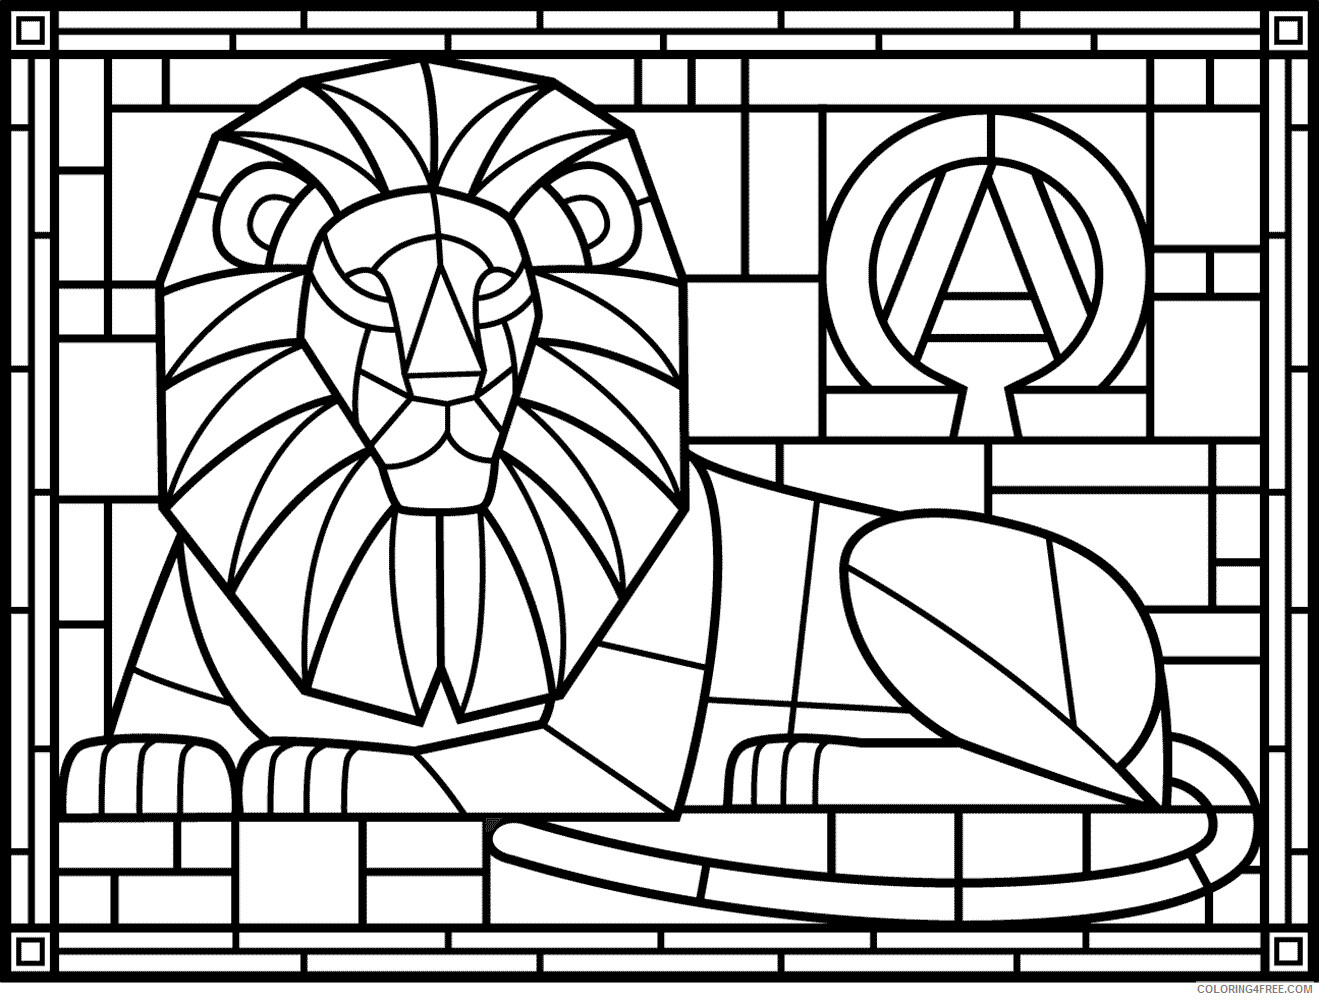 Lion Coloring Pages Animal Printable Sheets Stained Glass Lion 2021 3219 Coloring4free